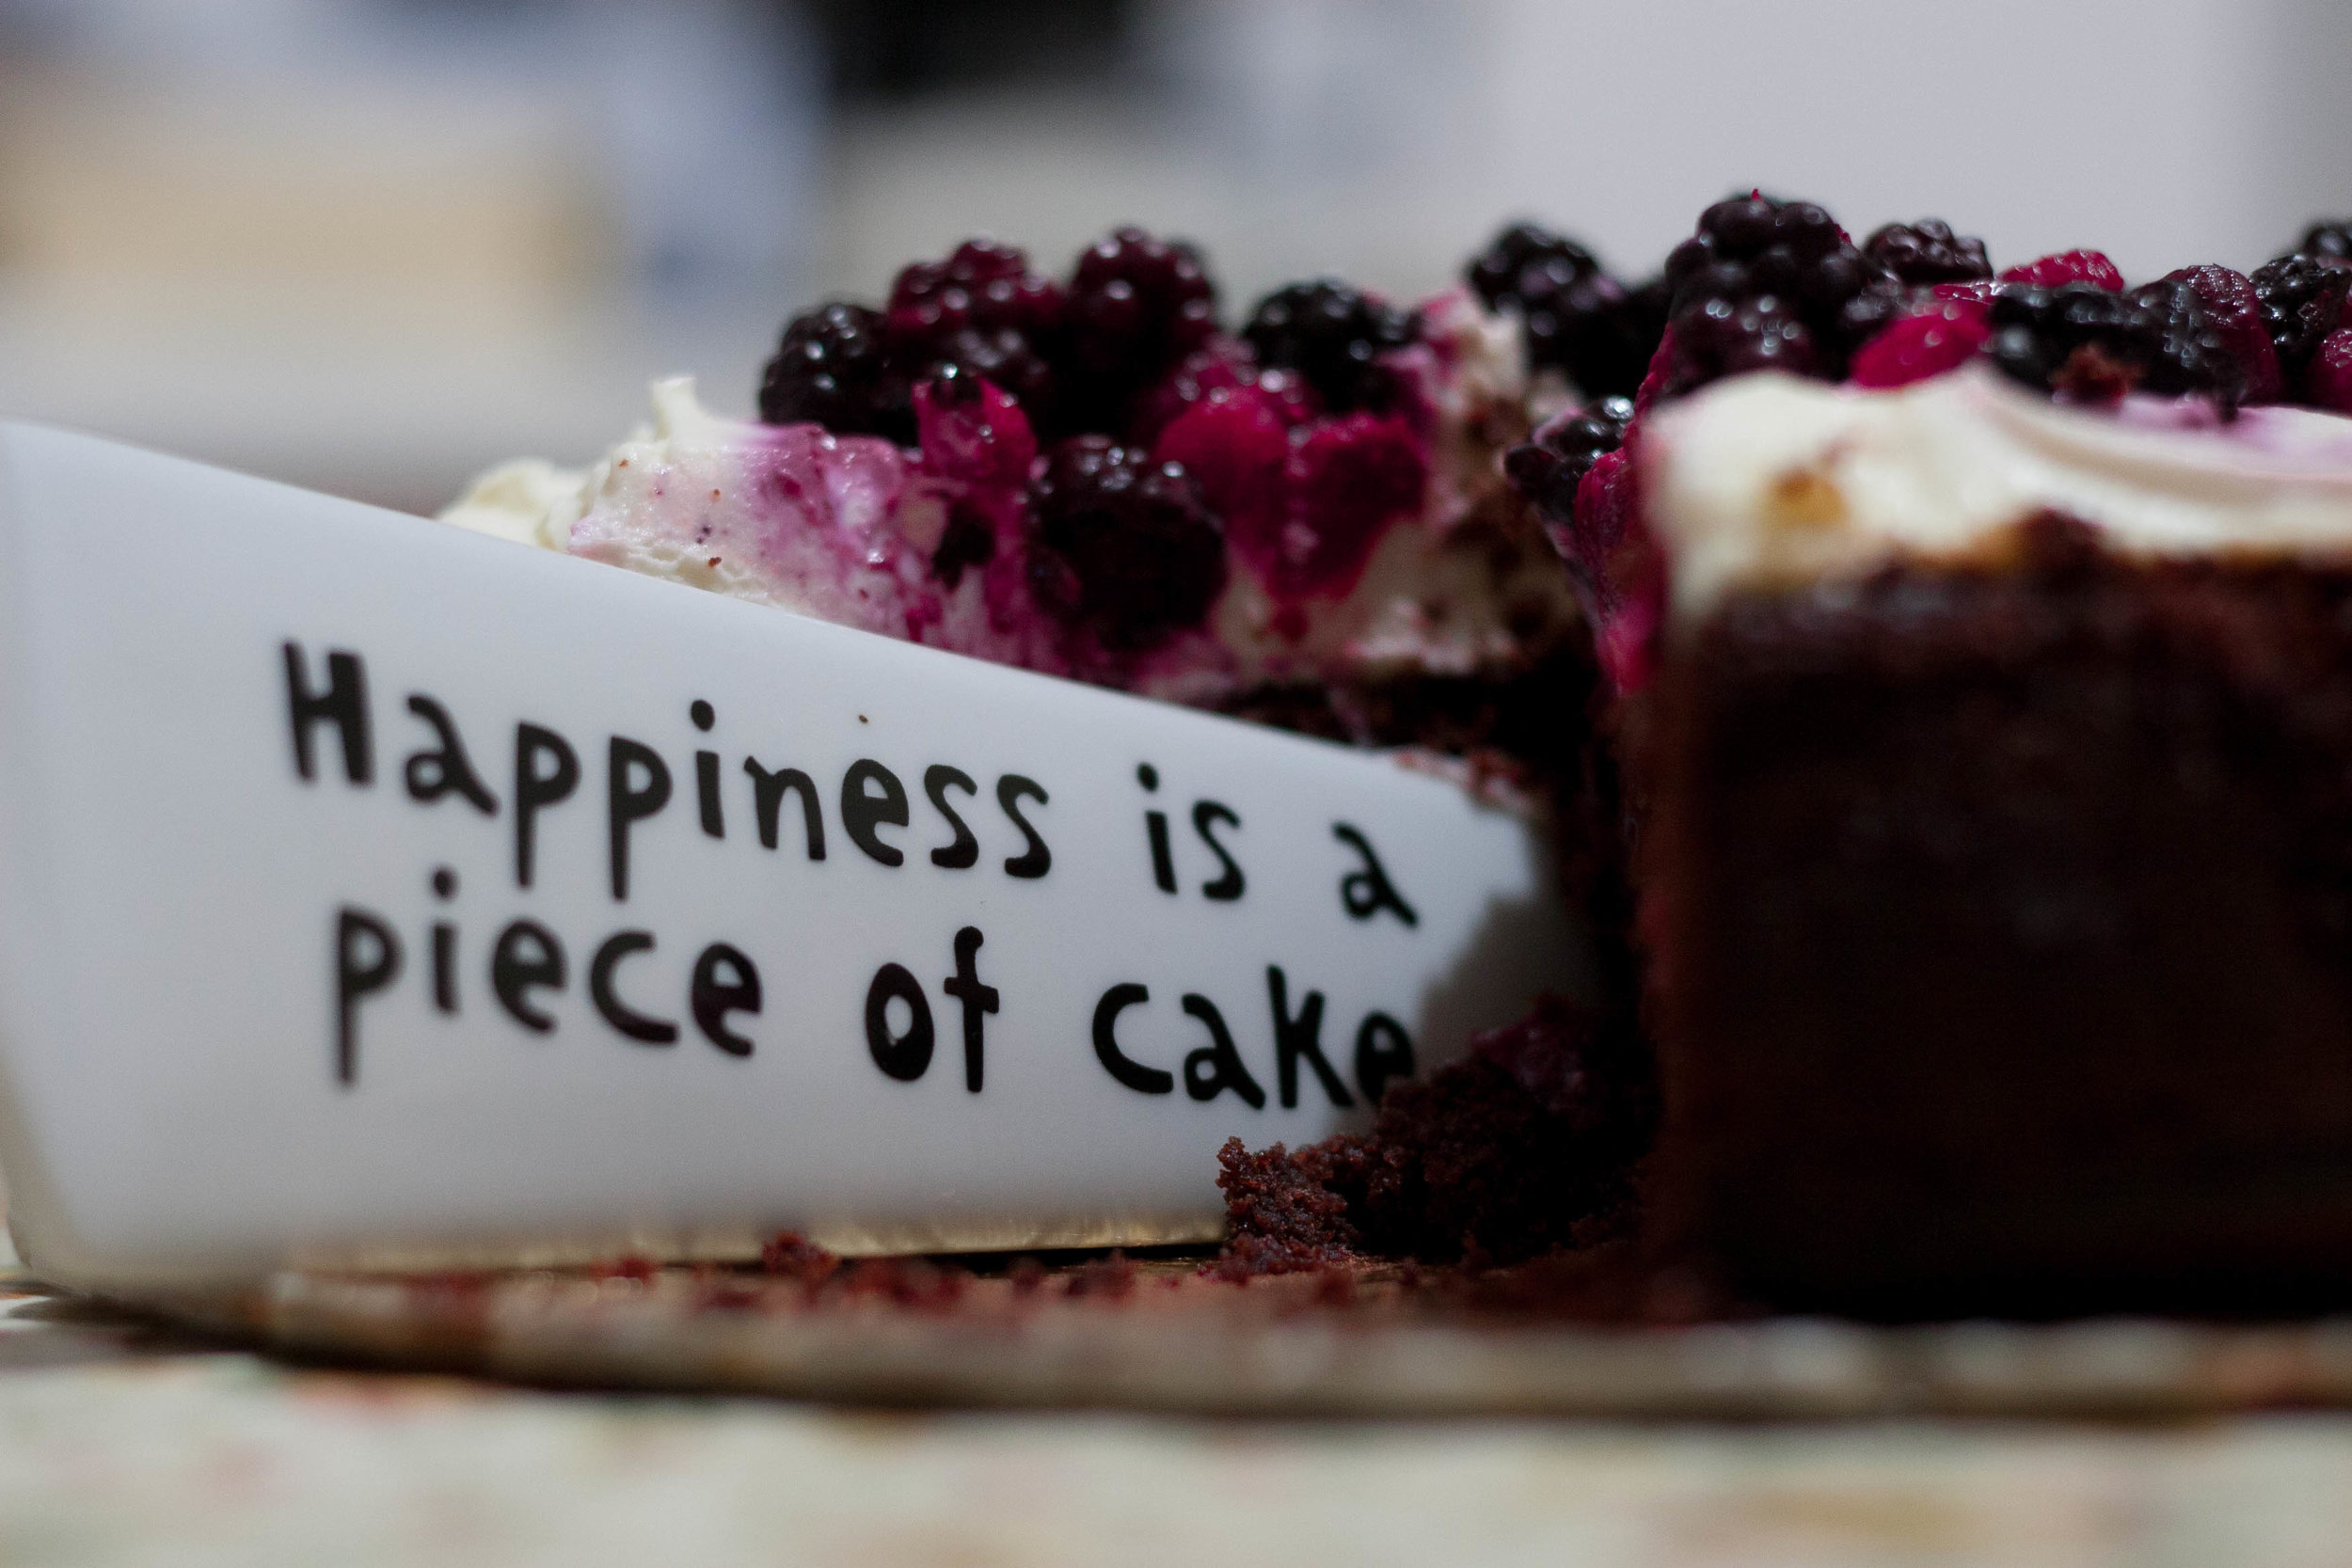 Happiness is a piece of cake therapy for eating disorders and body positive in West Chester, pa and on The Philadelphia Main Line, Bryn Mawr and Rosemont, PA